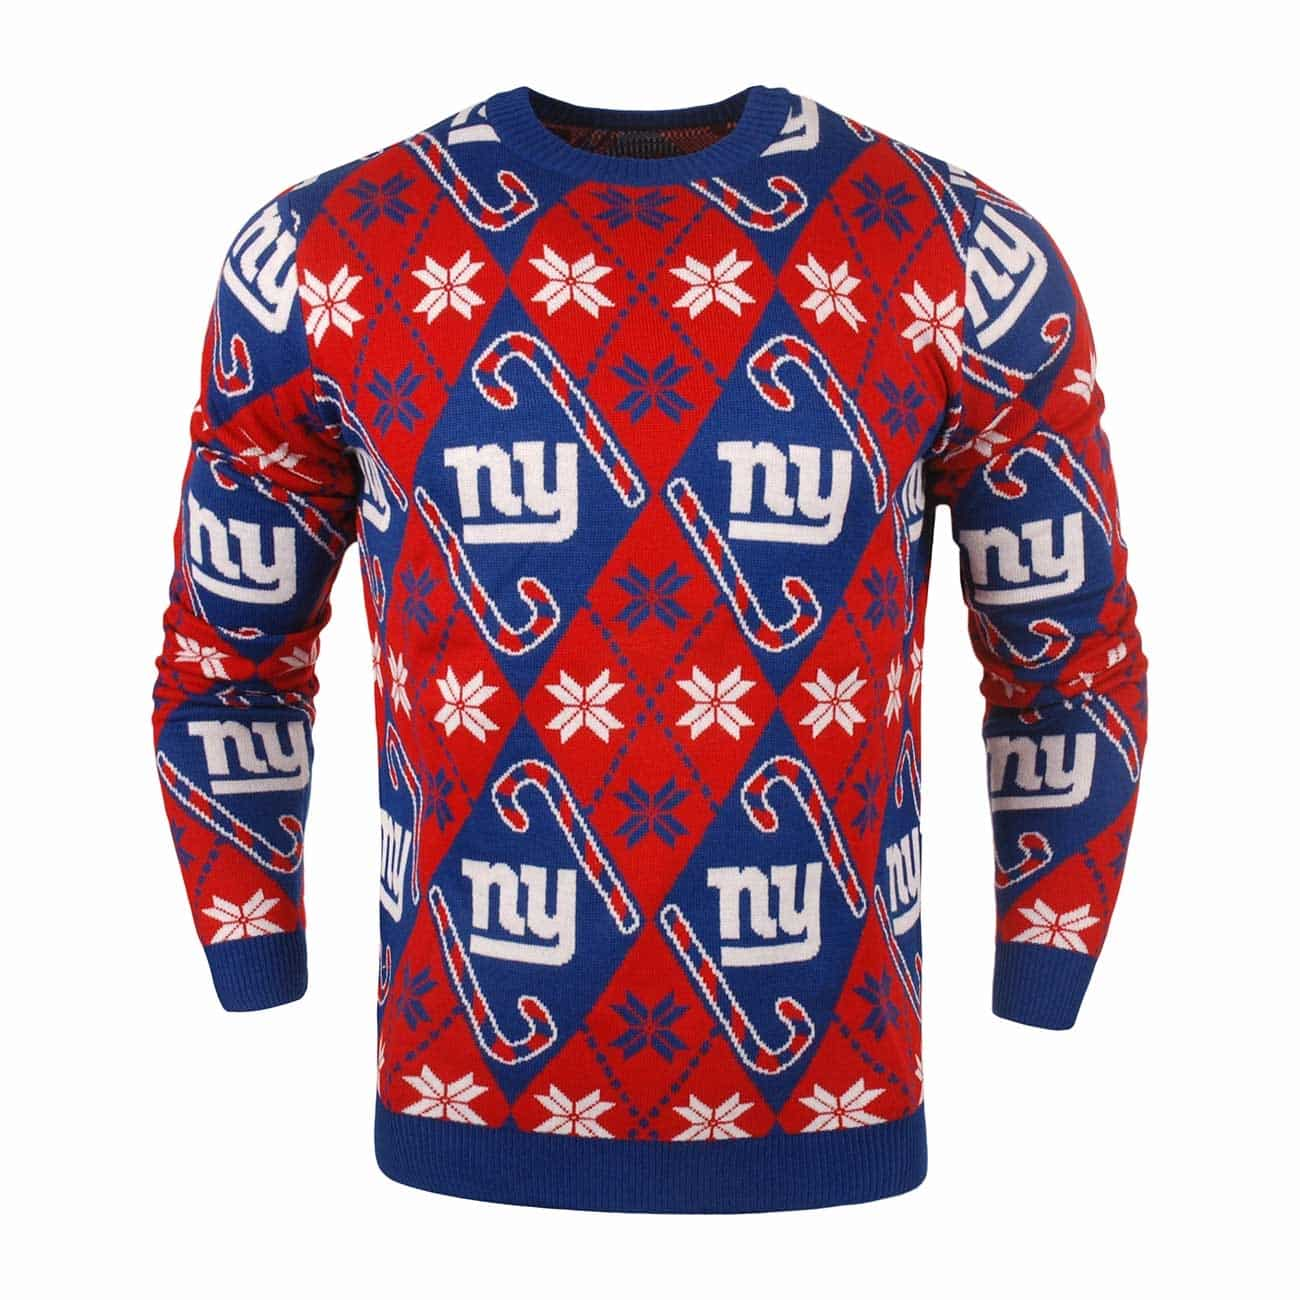 452781c0115 Forever Cellectibles New York Giants CANDY CANE Crewneck NFL Ugly Sweater